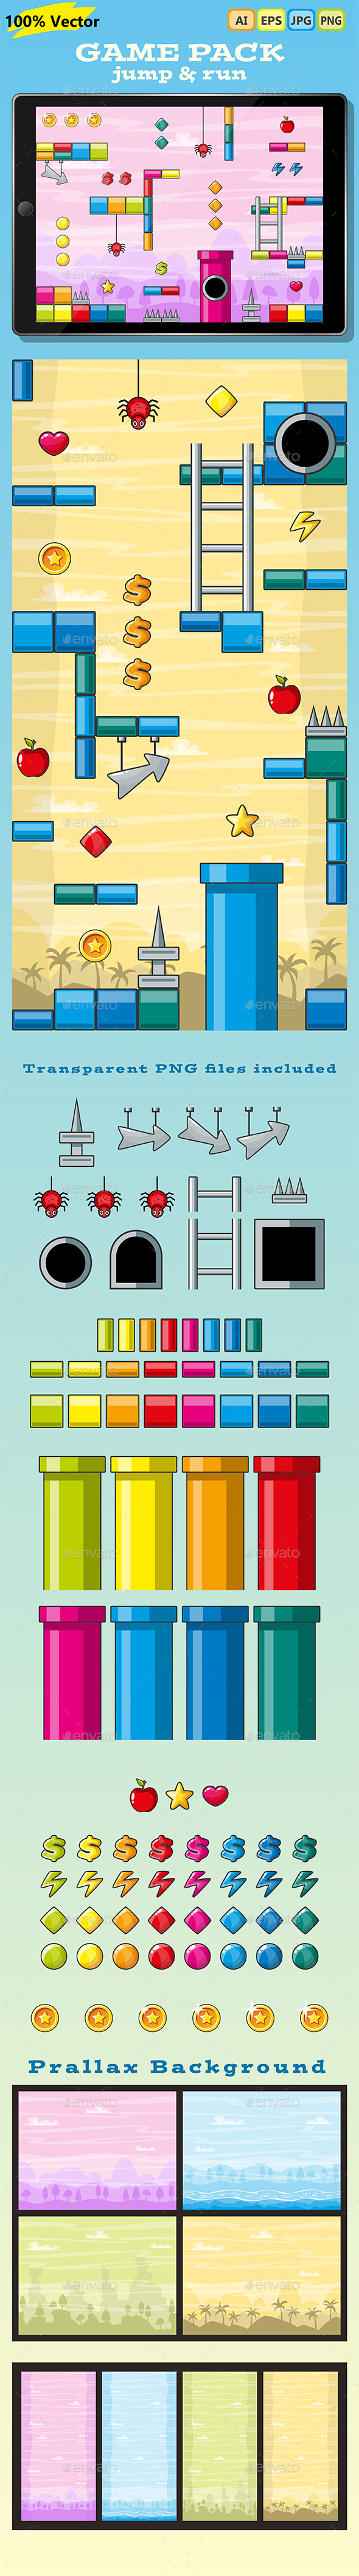 Jump and Run - Horizontal or Vertical Game Pack - Tilesets Game Assets